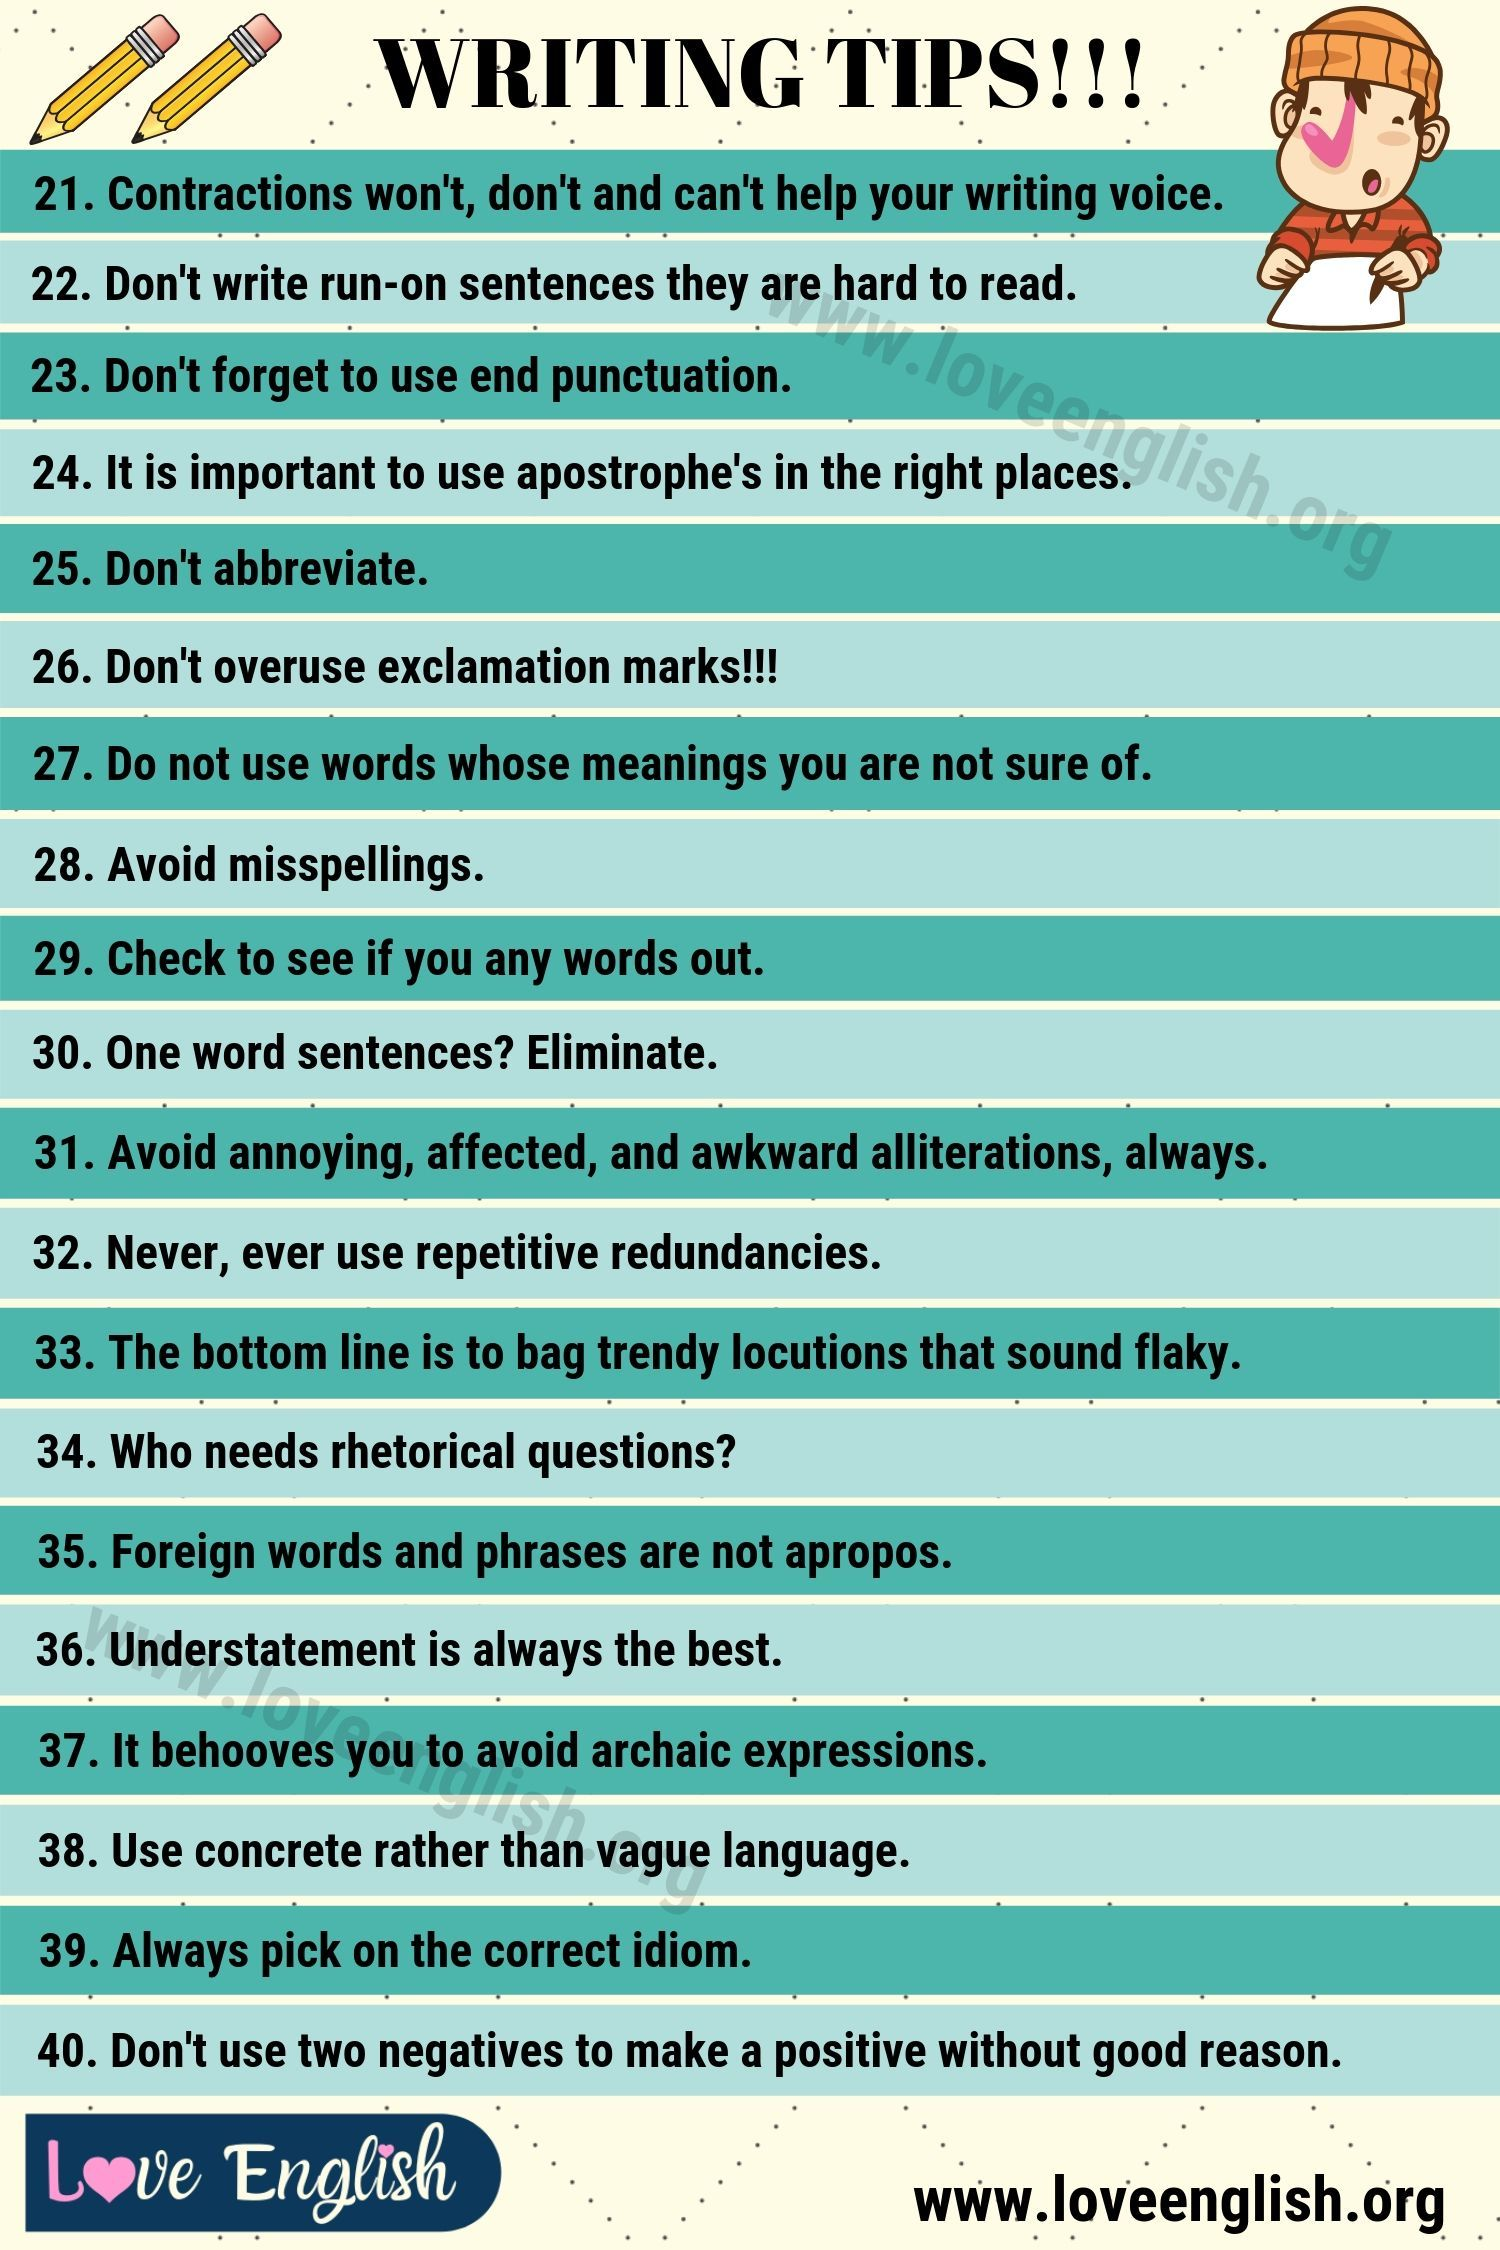 Writing Tips: 12 Smart Tips on How to Write Better - Love English